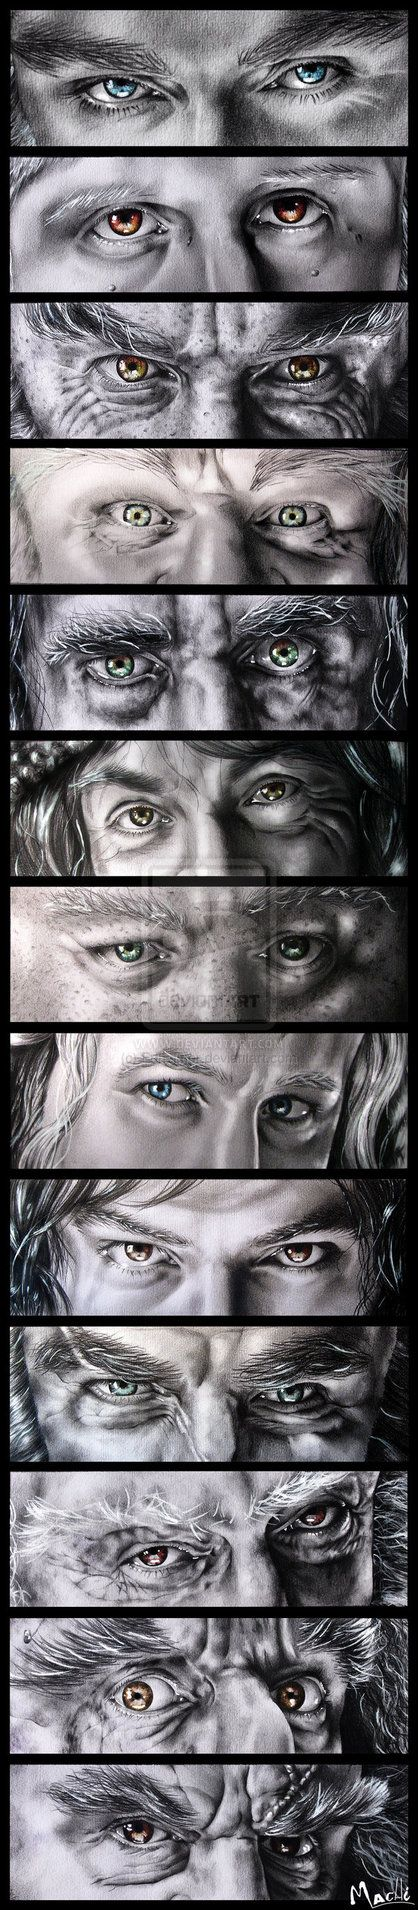 The Dwarves' eyes. Thorin, Ori, Nori, Dori, Bifur, Bofur, Bombur, Fili, Kili, Dwalin, Balin, Oin and Gloin